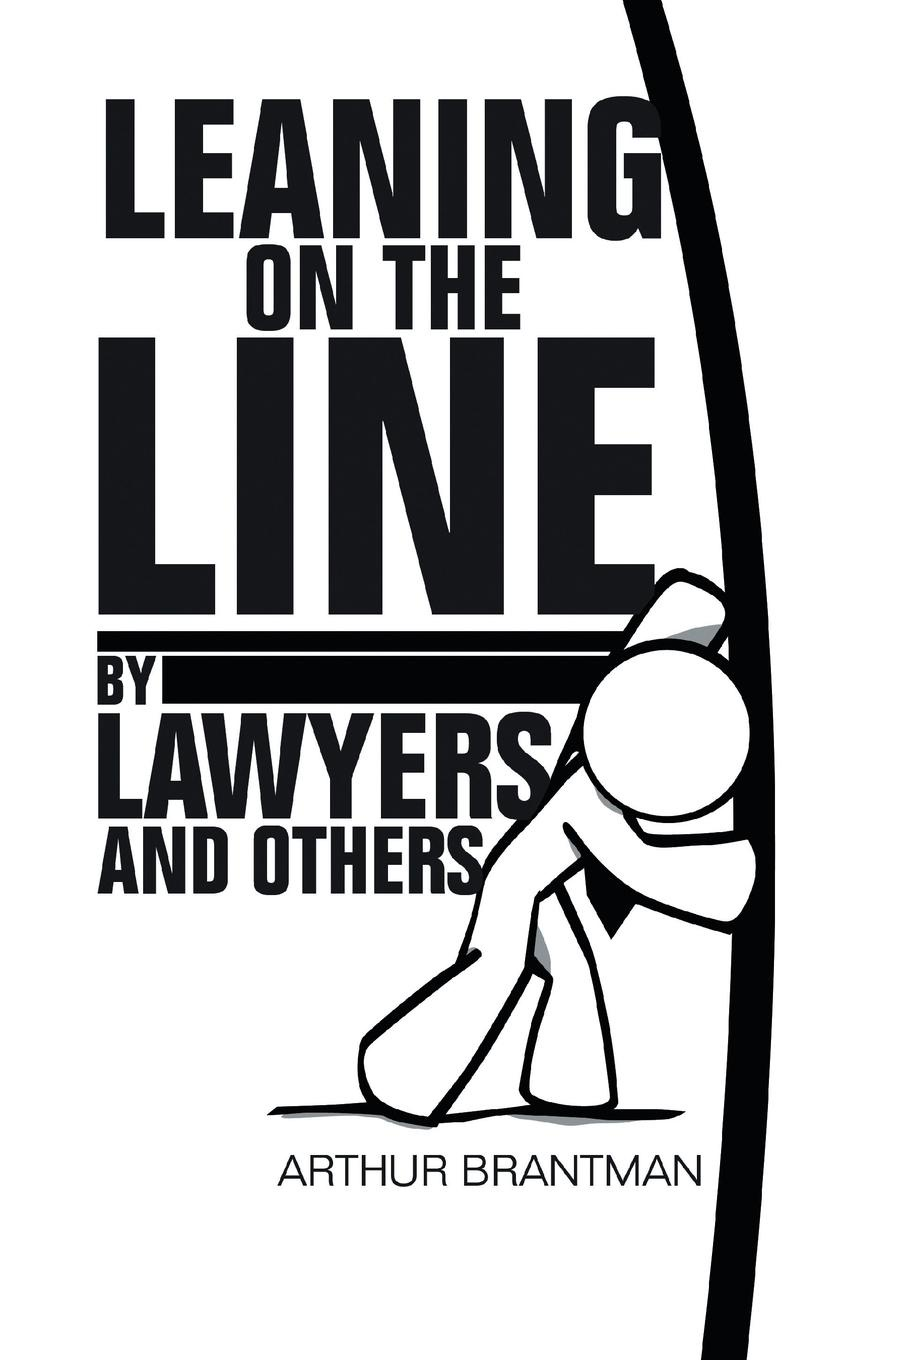 Arthur Brantman Leaning on the Line by Lawyers and Others